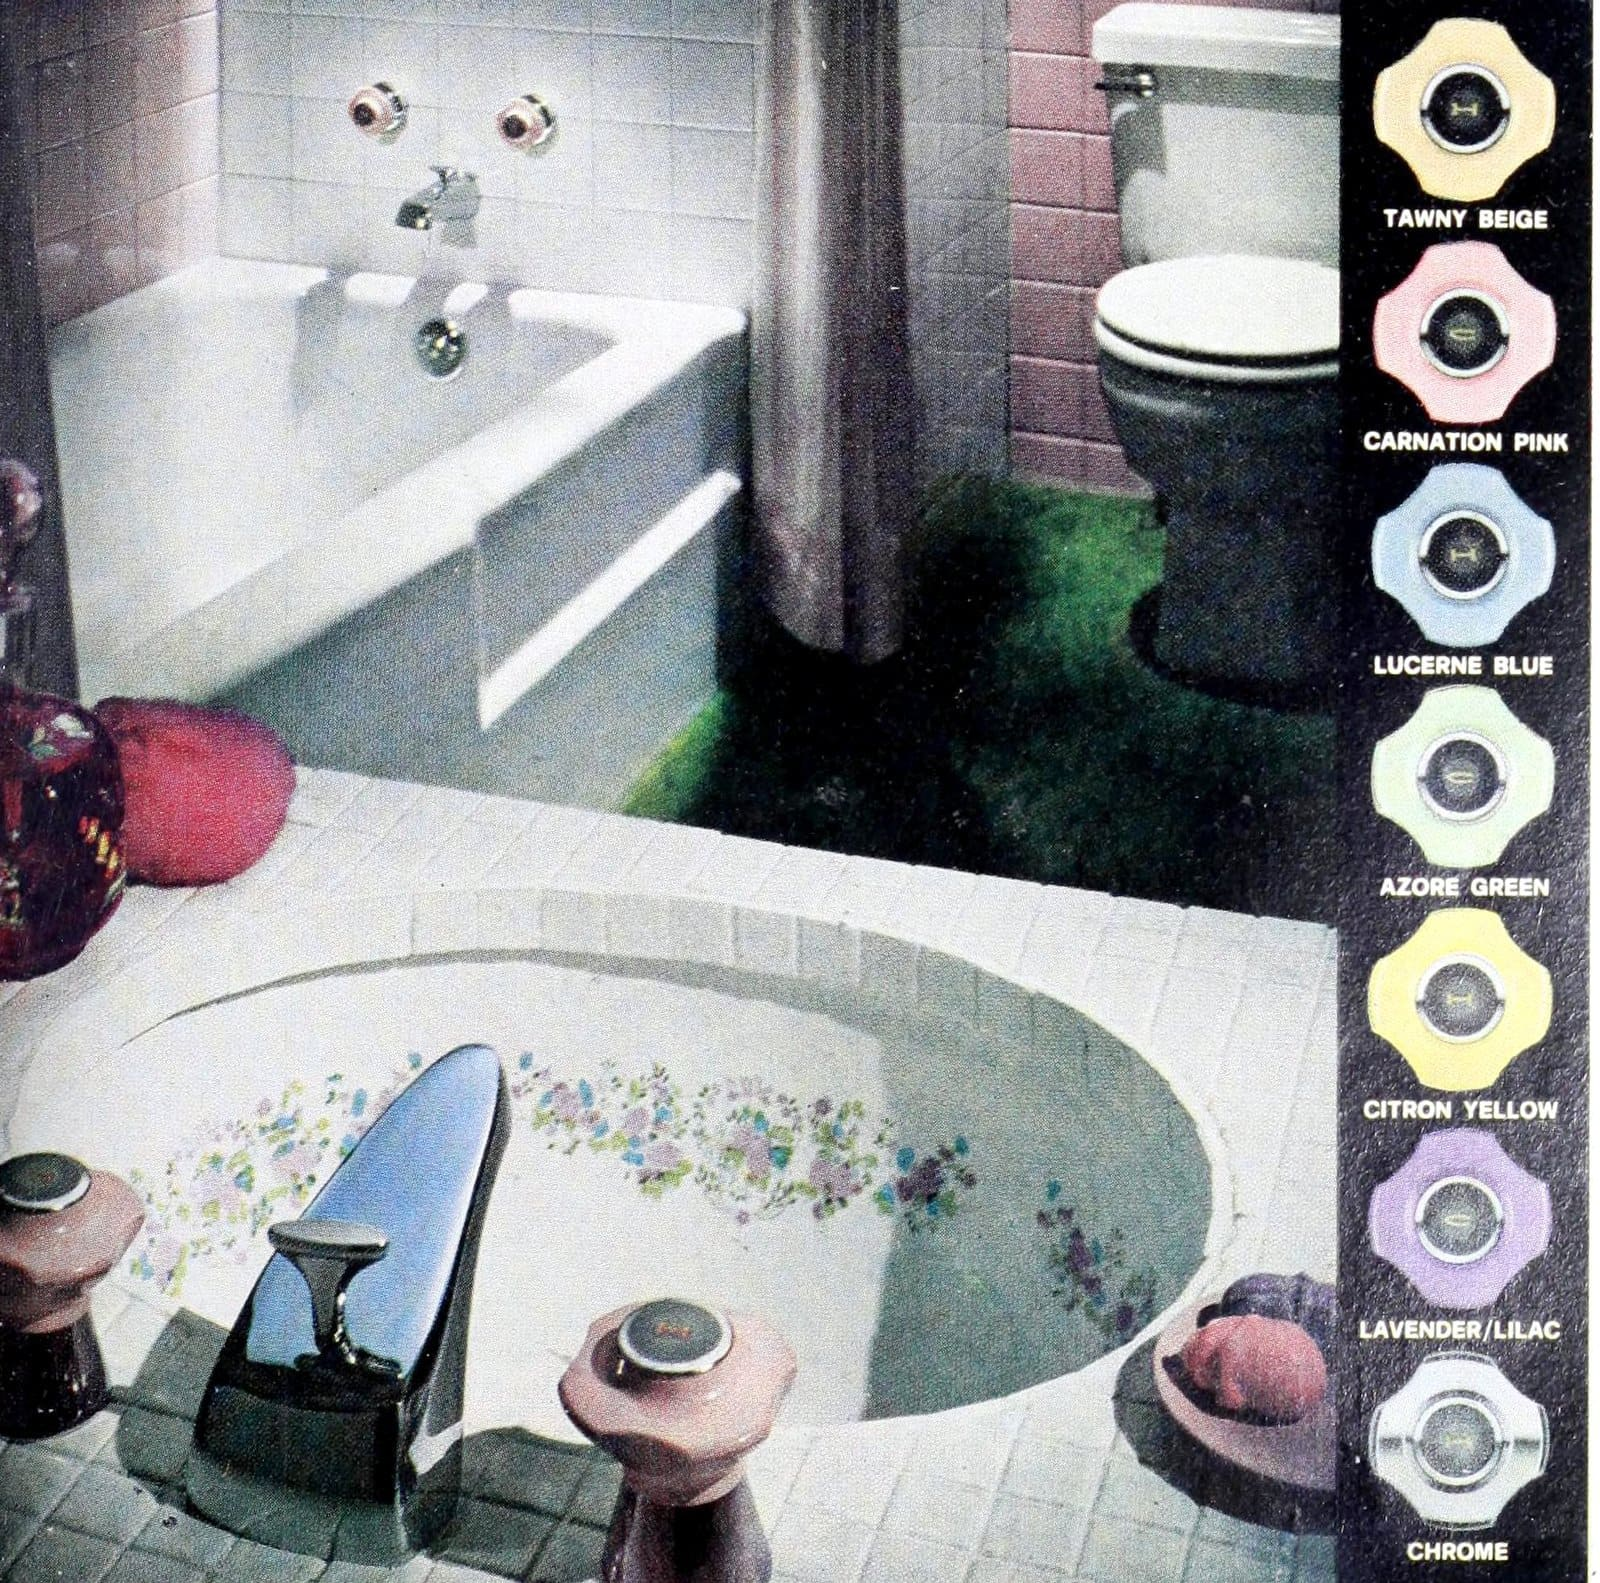 Tiled vintage bathroom with matching sink and faucet handles (1966)